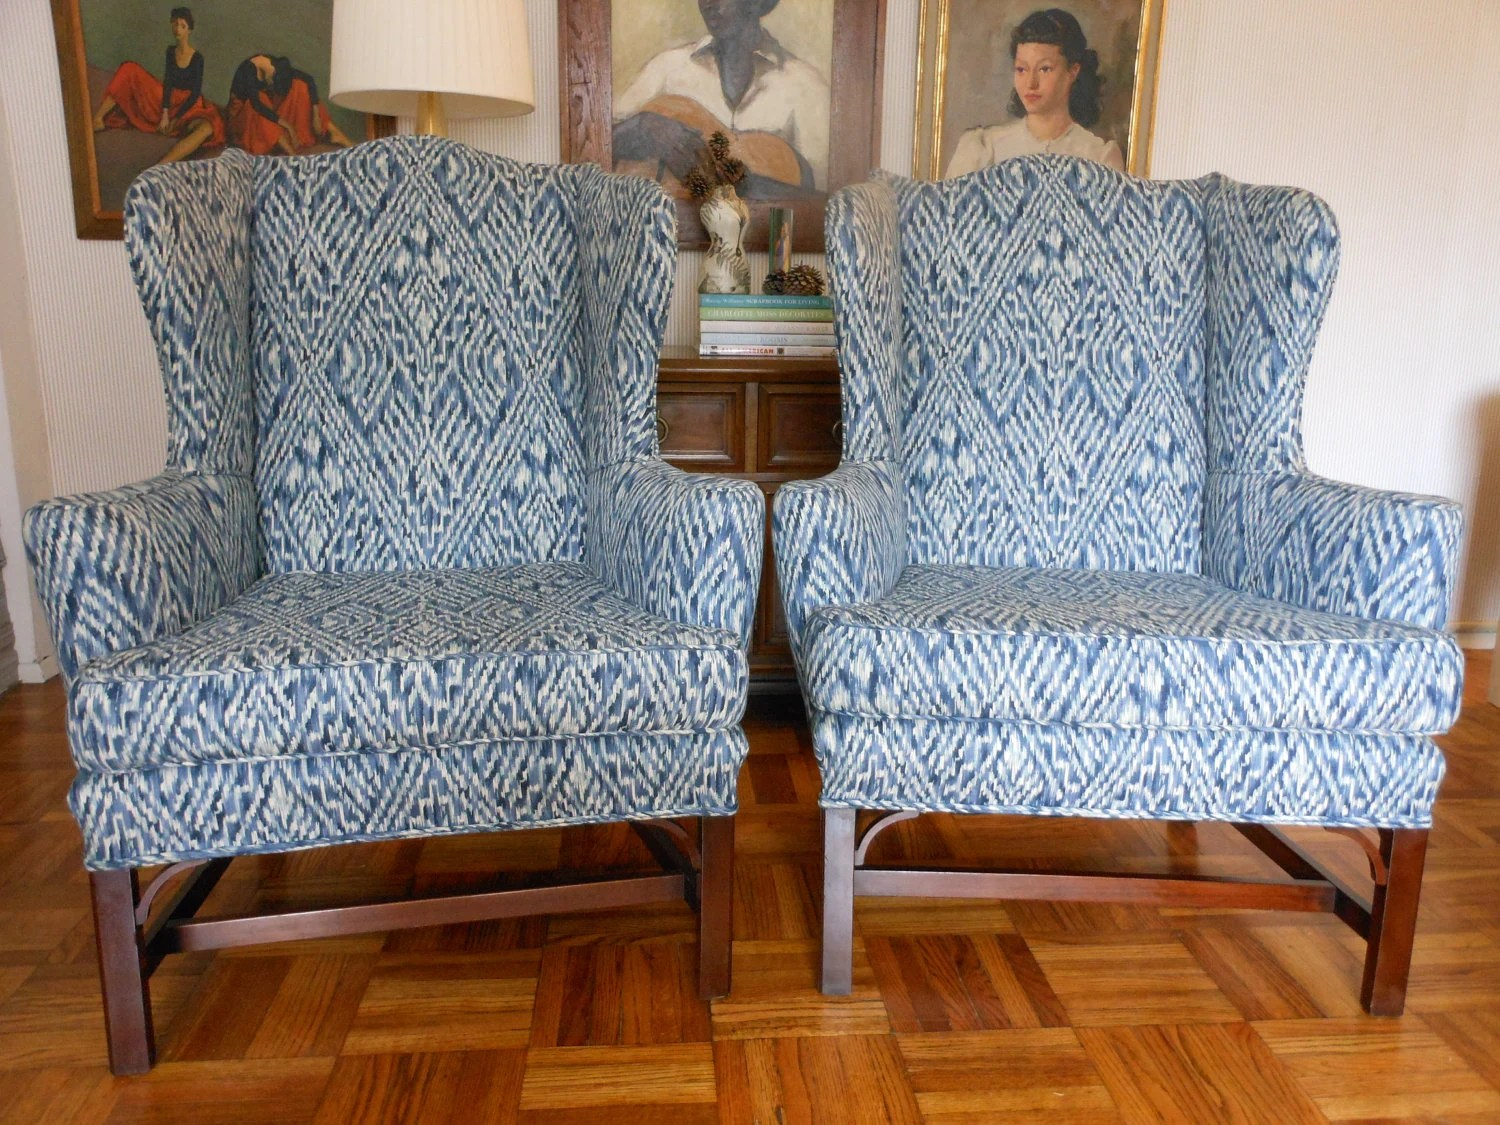 Used Wingback Chairs Pair Of Vintage Chippendale Style Wingback Chairs By Kittinger